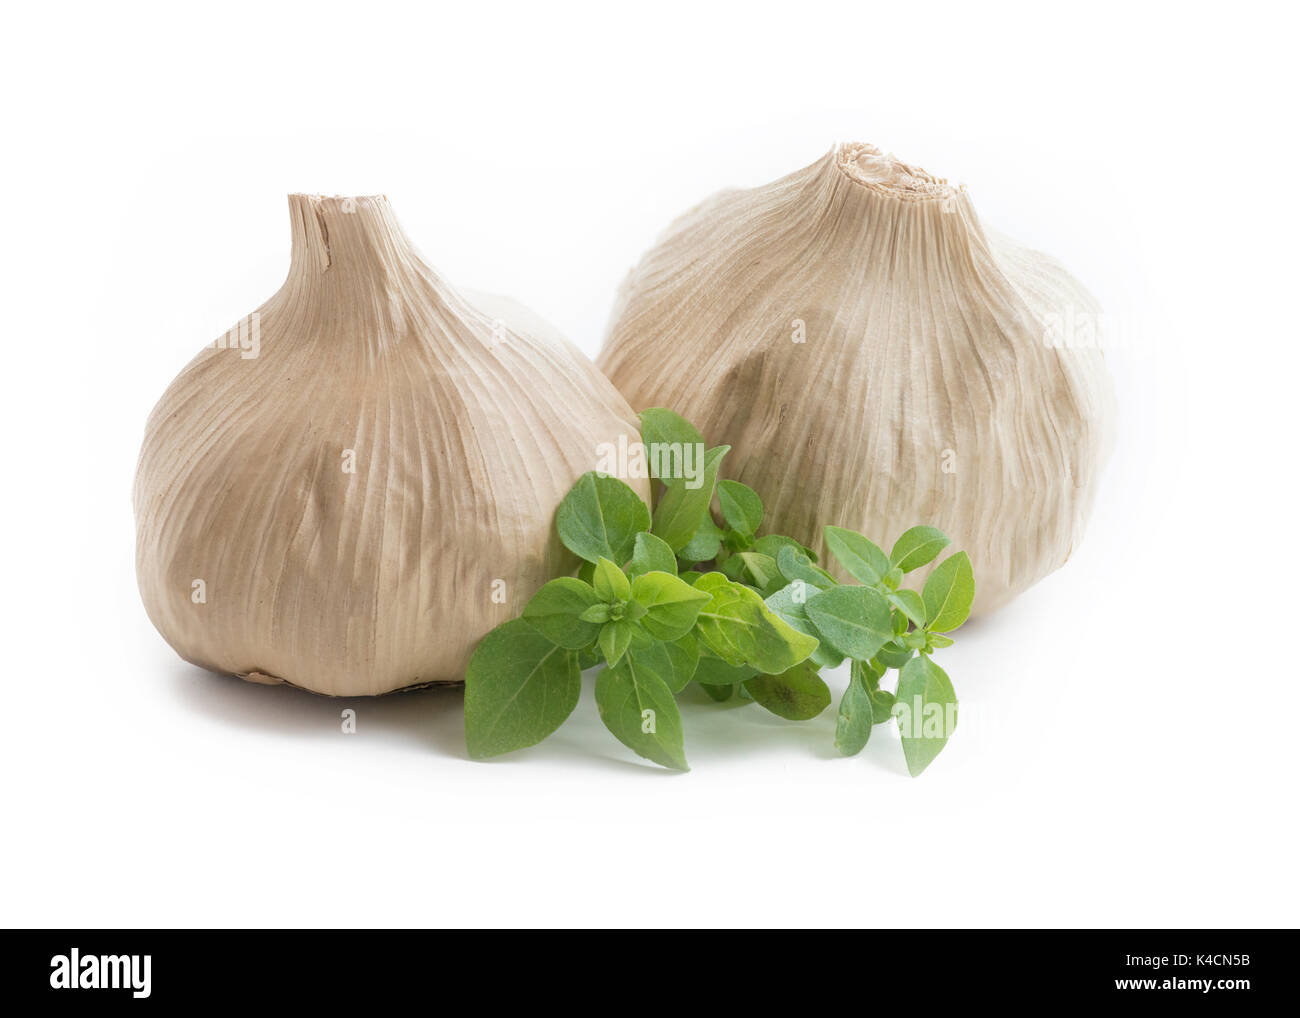 Whole bulb of home fermented Black Garlic latest wonder food ,rich in antioxidants, vitamins and minerals. Isolated on white background with greenery - Stock Image